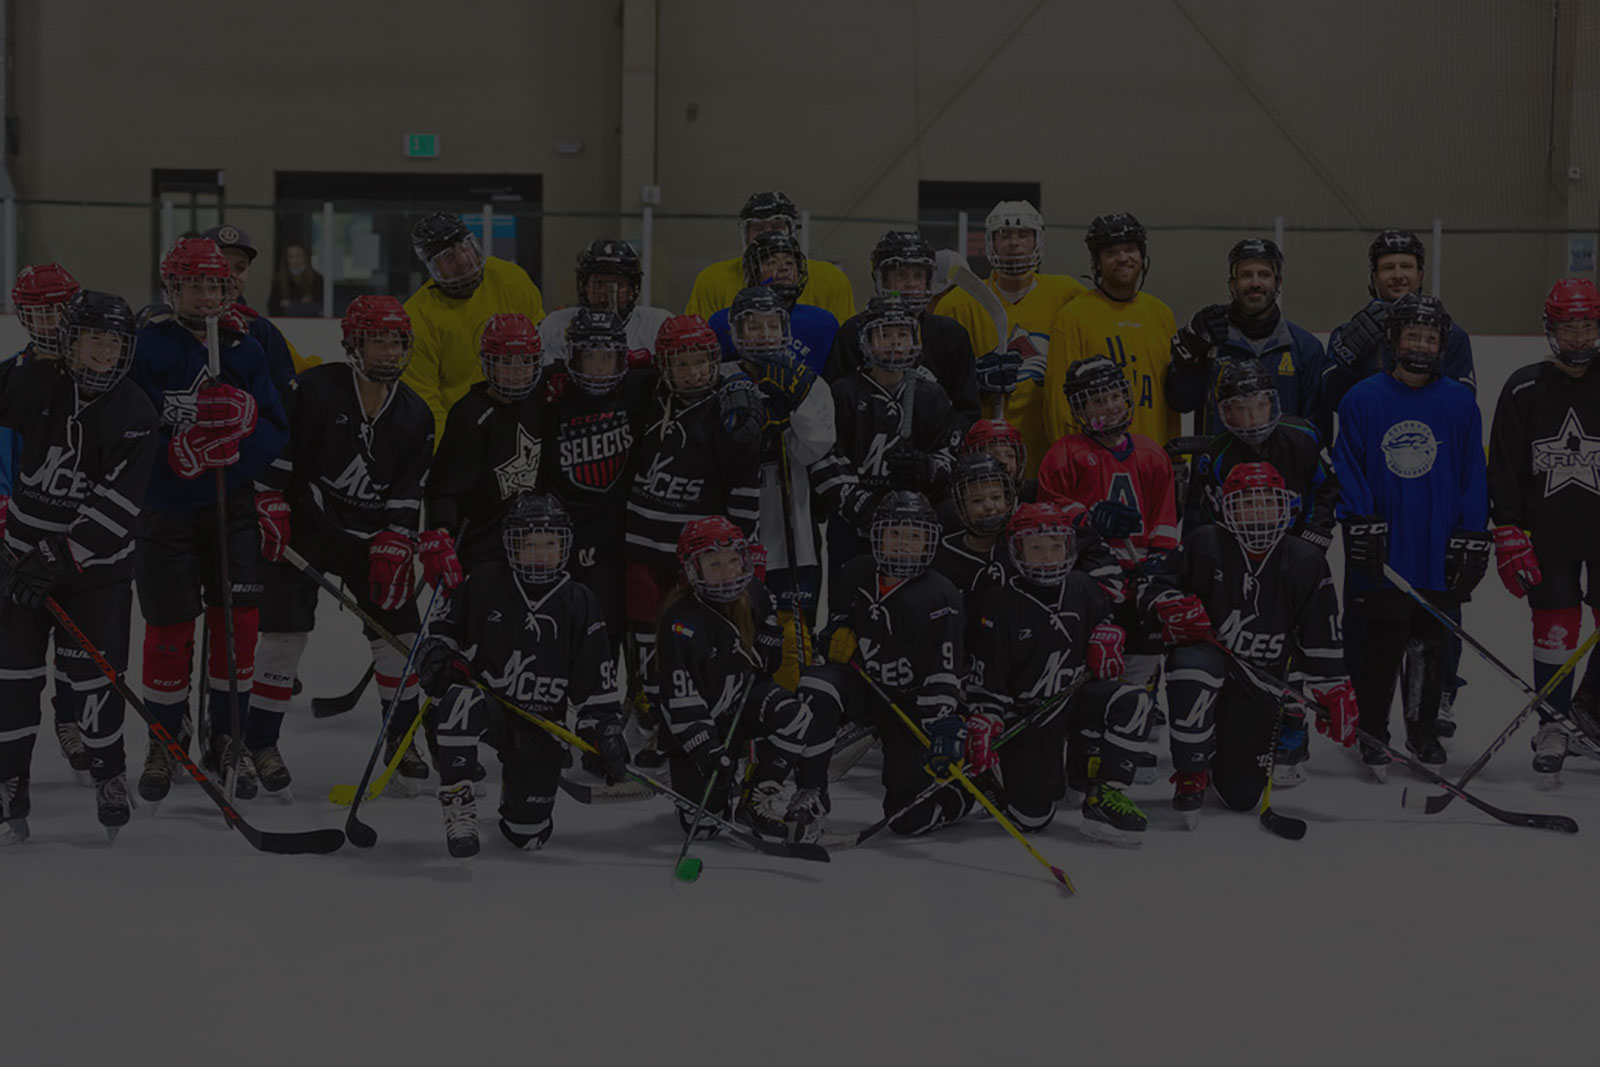 ACES Sports Academy group shot on ice